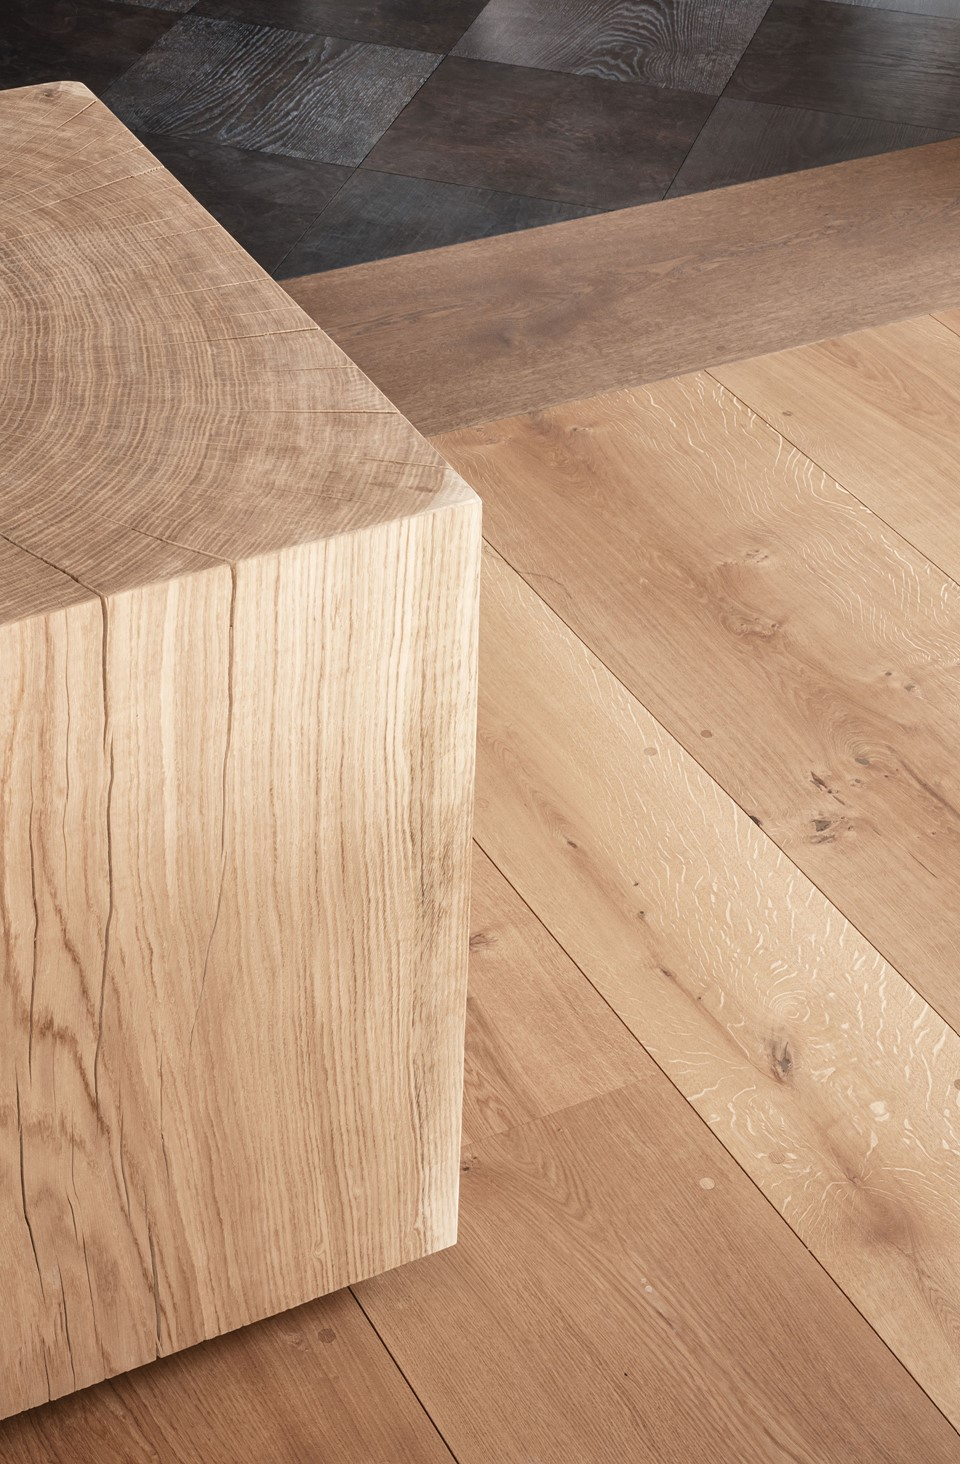 heartoak_mejlborg-aarhus-showroom_wooden-cube_dinesen.jpg